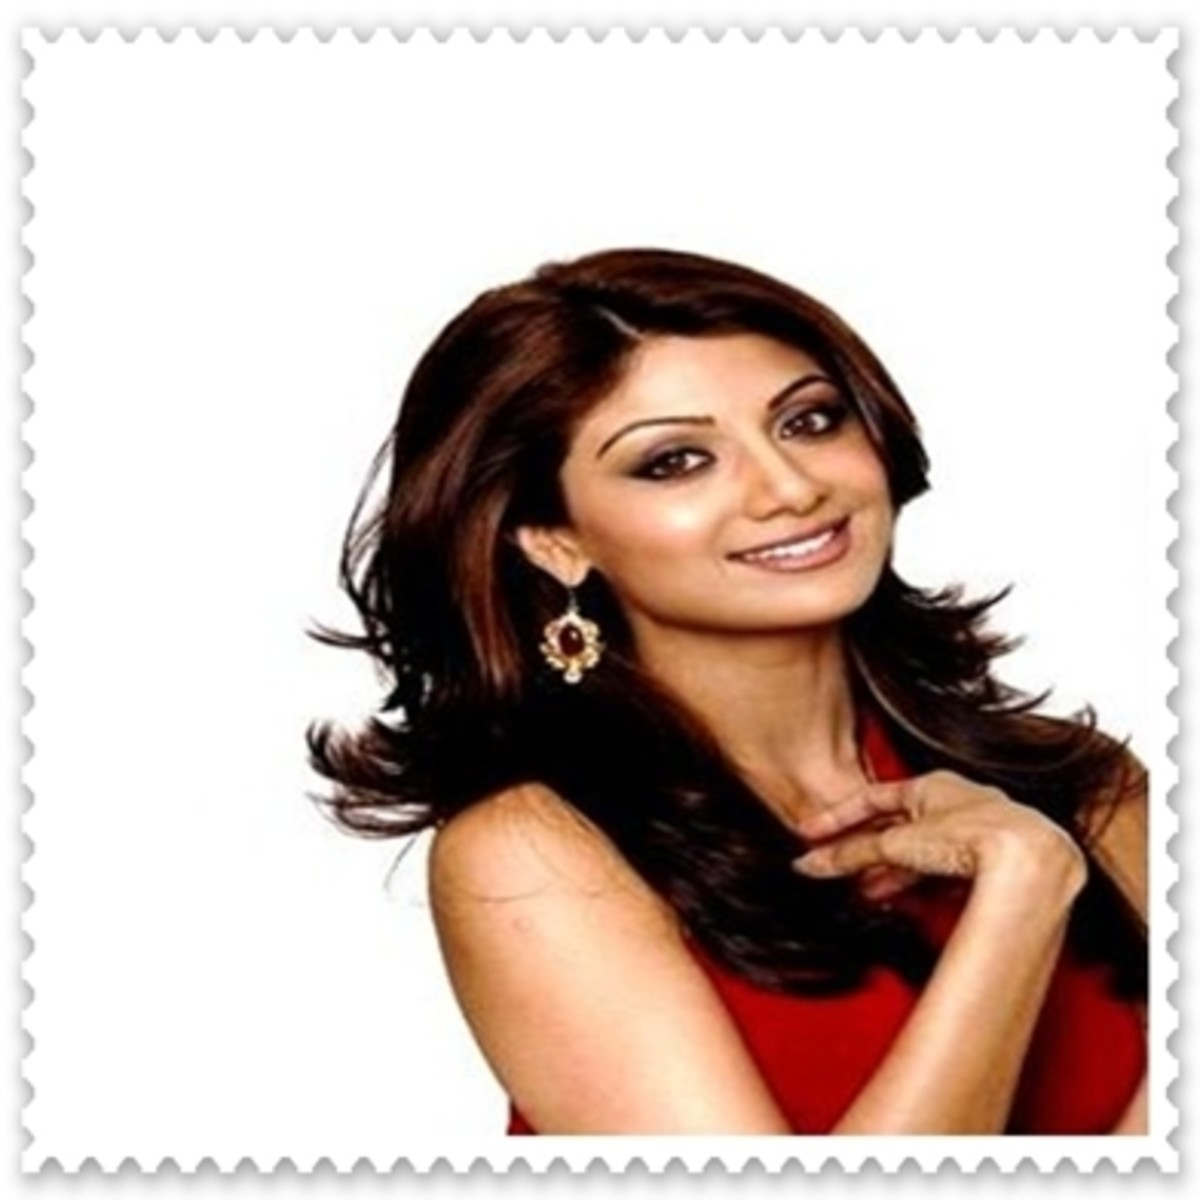 Shilpa Shetty married Raj Kundra